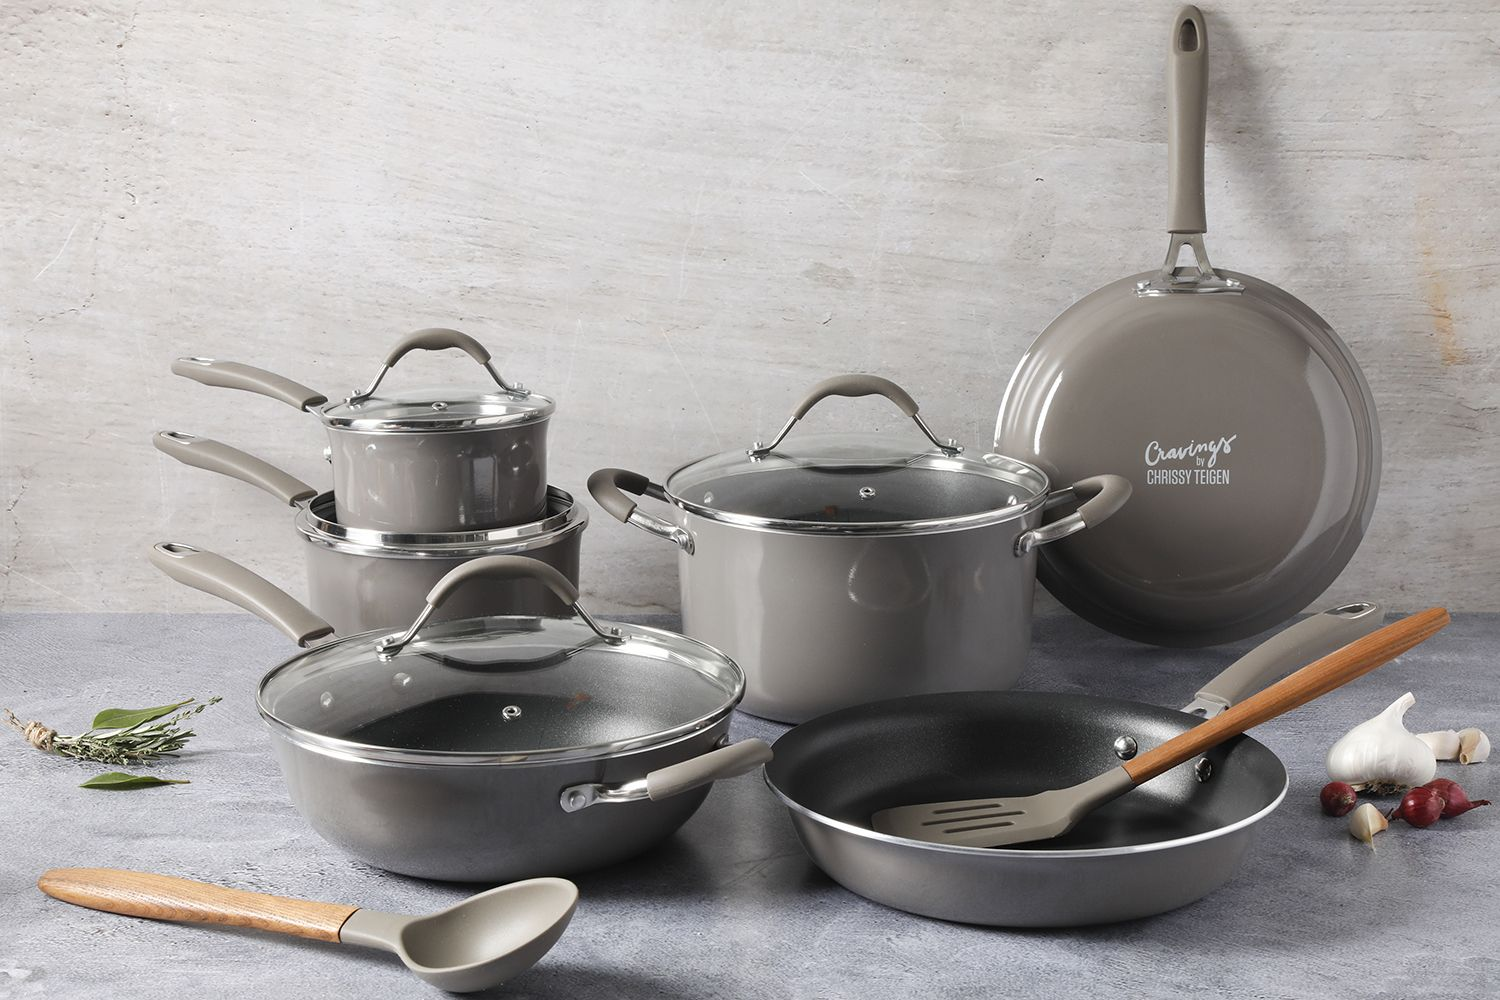 Chrissy Teigen Cookware Target With Images Pots And Pans Sets